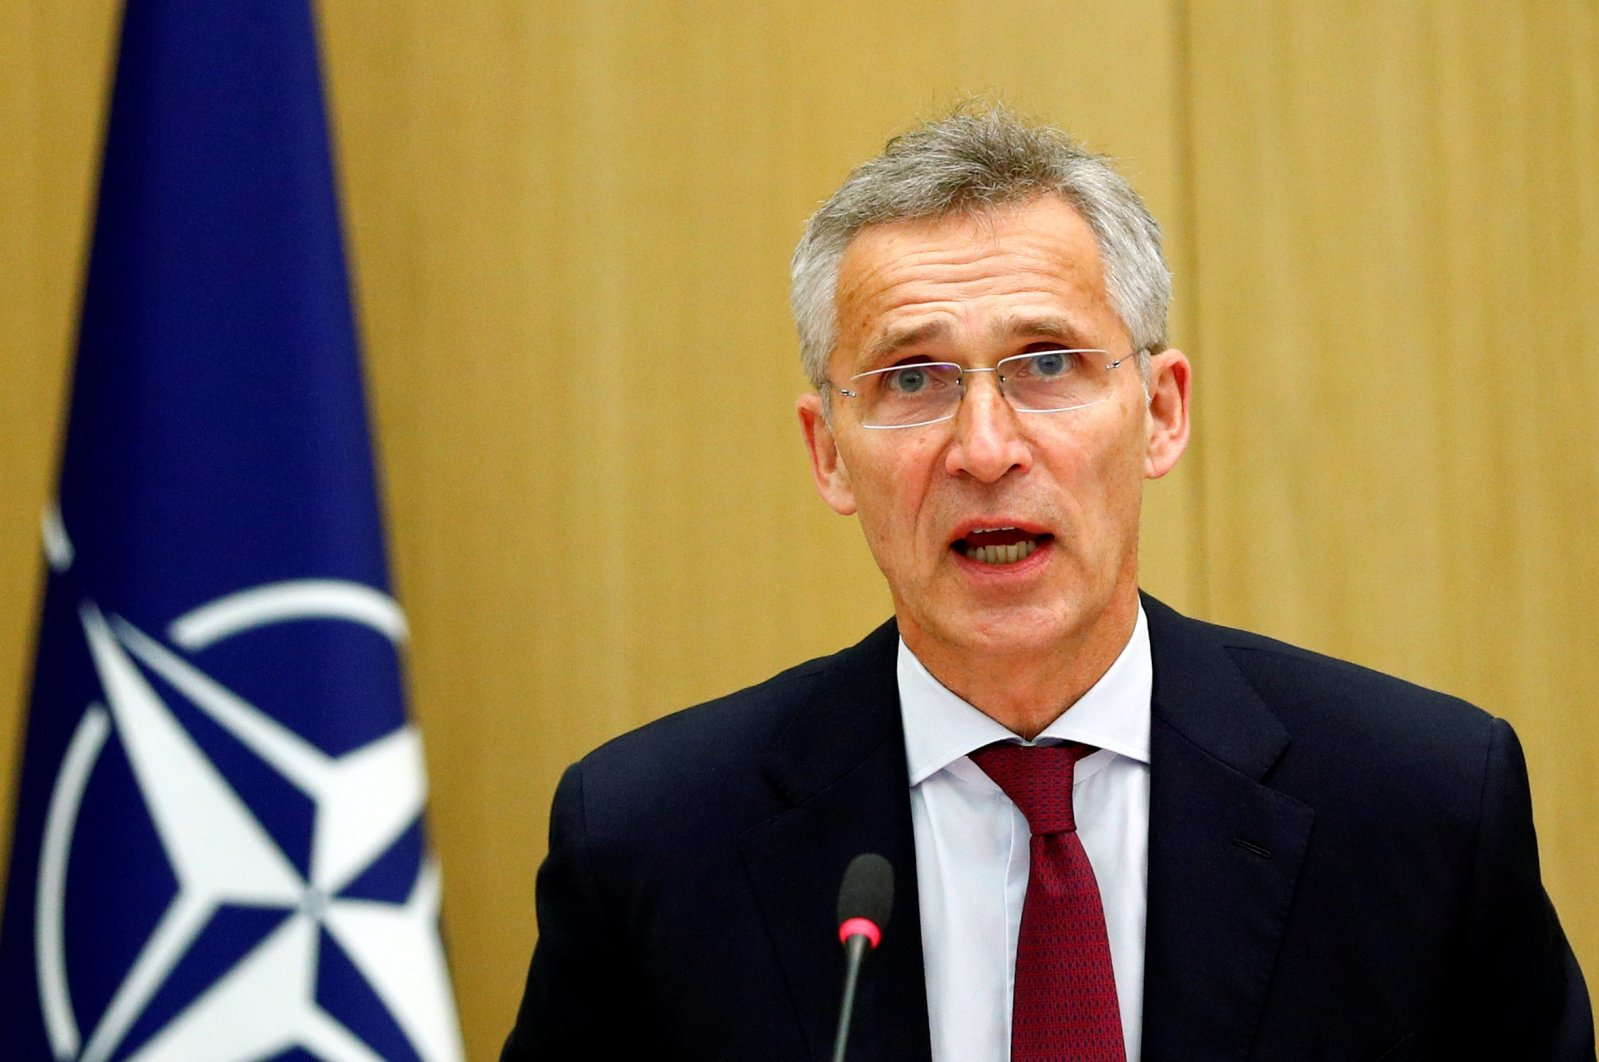 NATO Secretary-General Jens Stoltenberg speaks as he chairs a NATO defense ministers' meeting via teleconference at the alliance headquarters in Brussels, Belgium, June 17, 2020. (Reuters Photo)